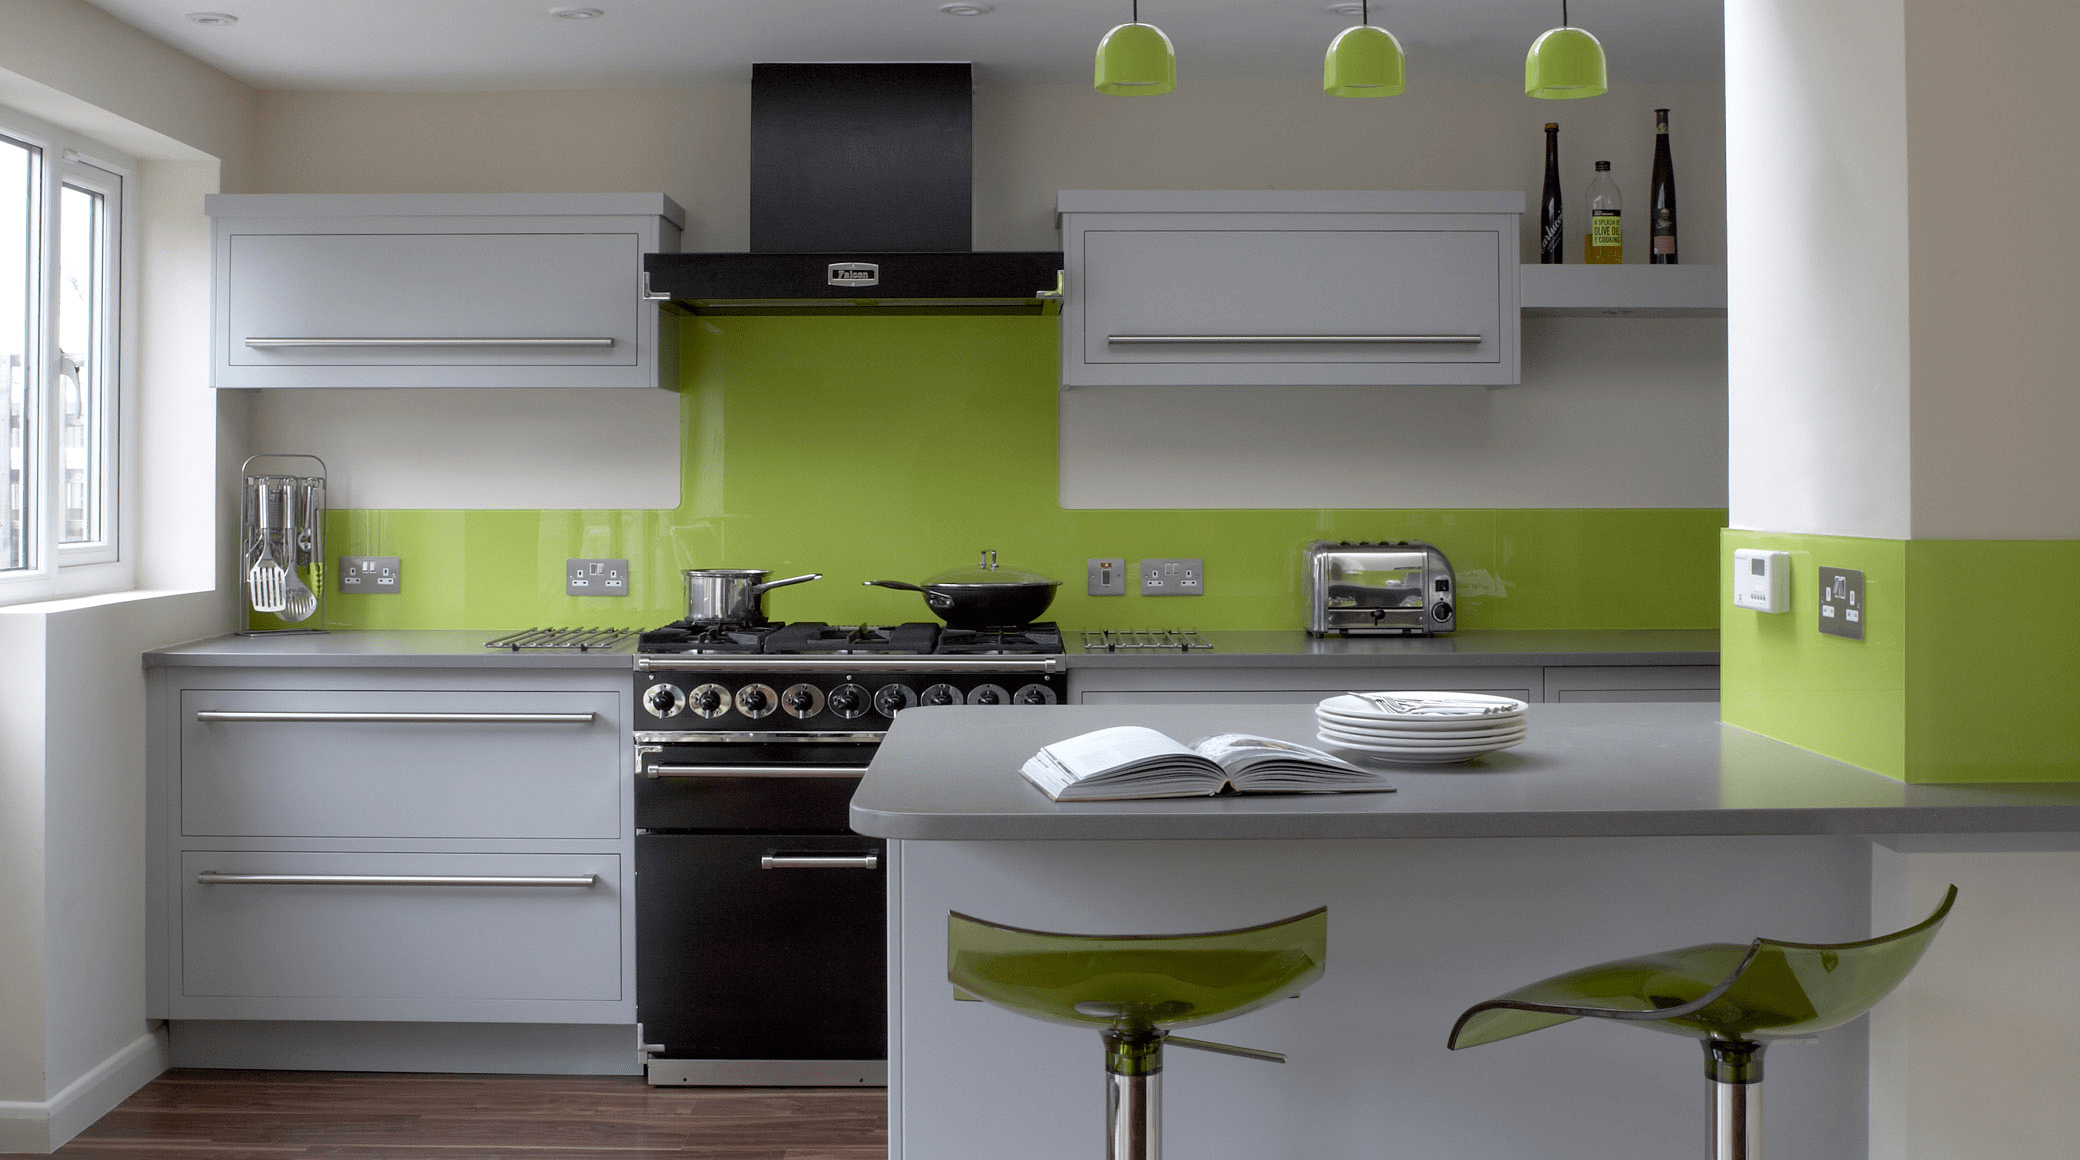 green kitchen countertops Modern Kitchen In Green Color Inspirations Amusing White Lime Green Kitchen Decor with Kitchen Island